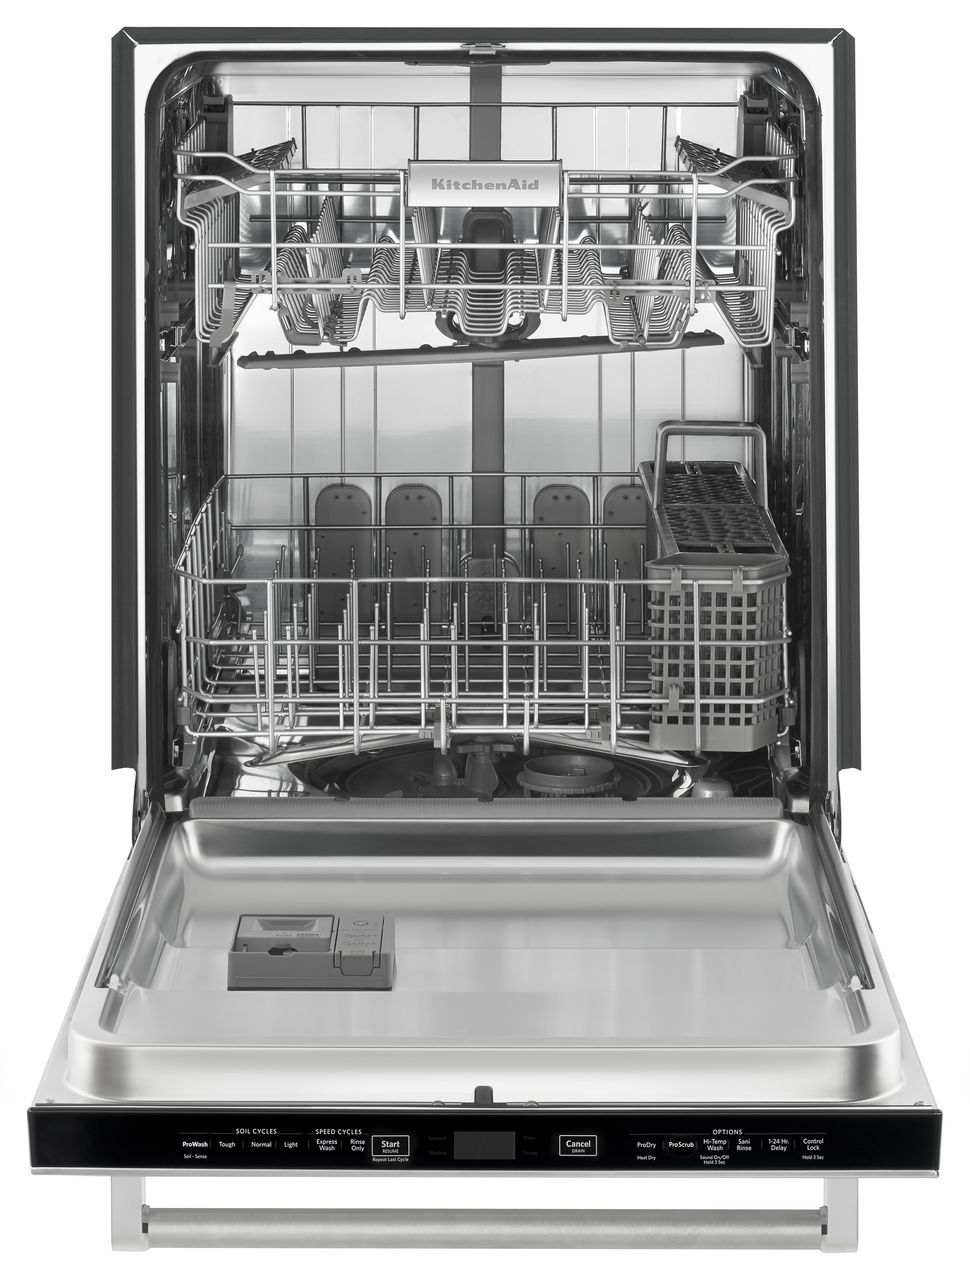 How To Clean The Inside Of A Stainless Steel Dishwasher Kitchenaid Stainless Steel Dishwasher Kdtm354ess